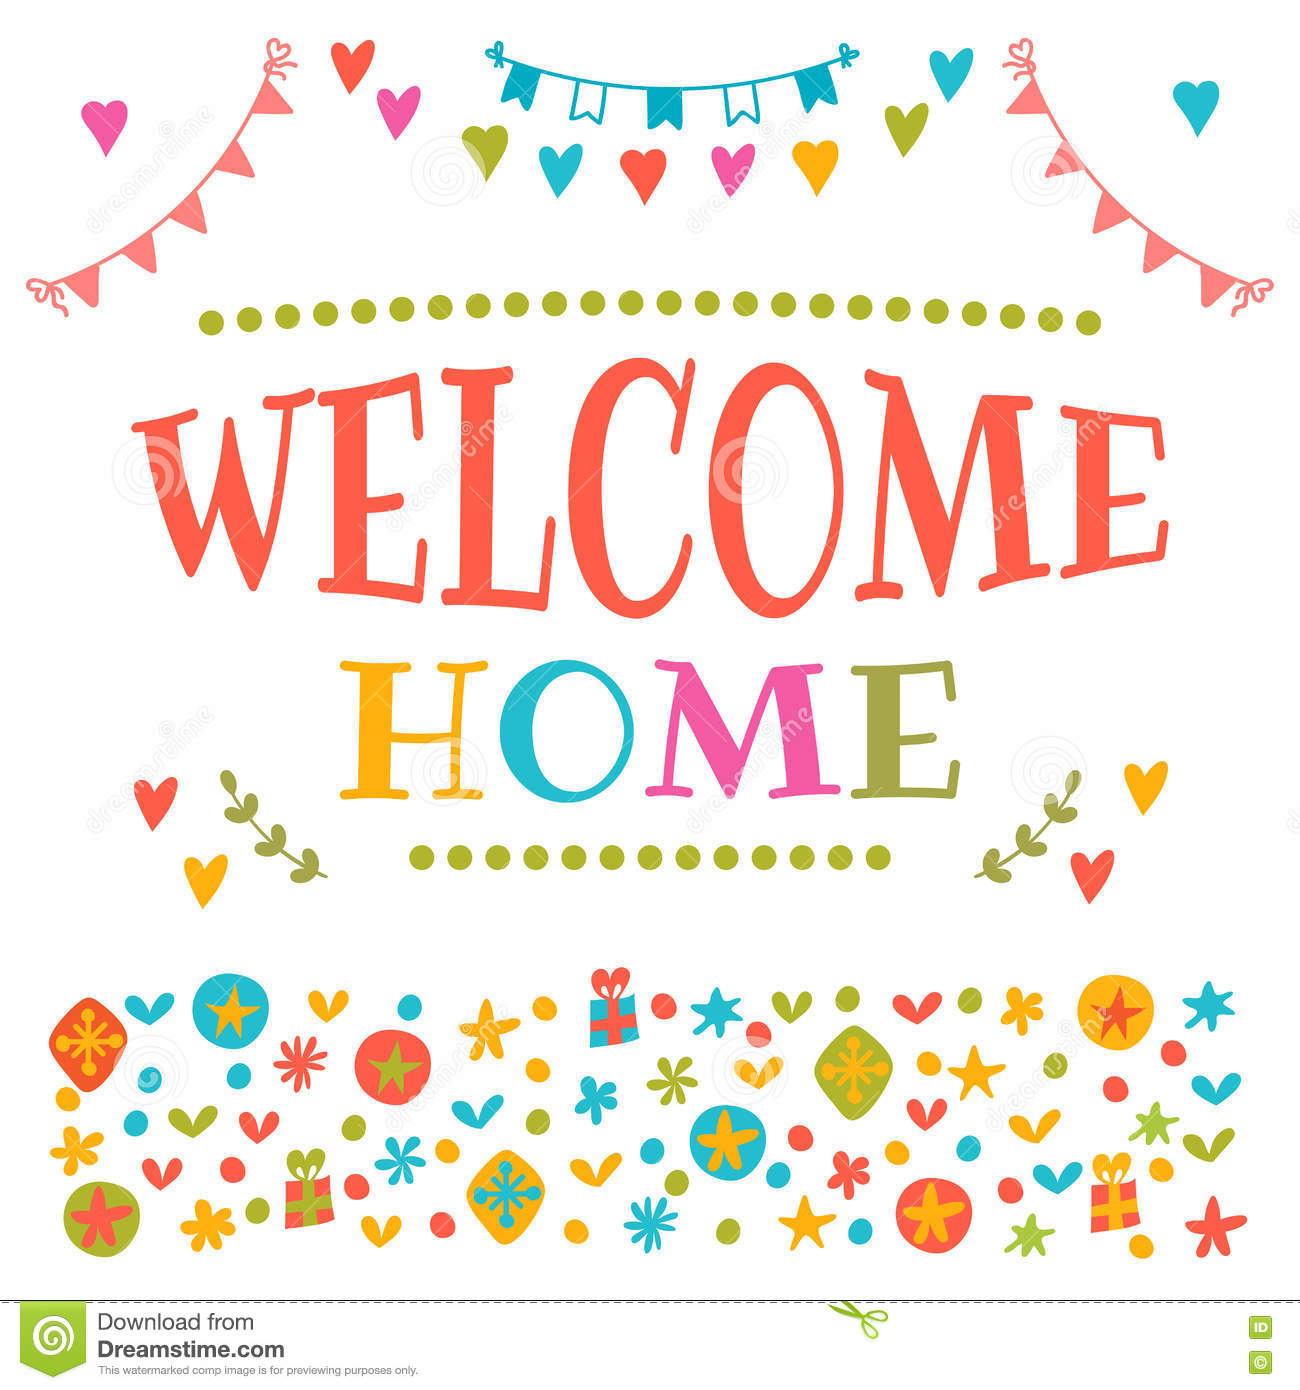 welcome-home-text-colorful-design-elements-decorative-lett-lettering-cute-postcard-vector-illustration-72595465.jpg